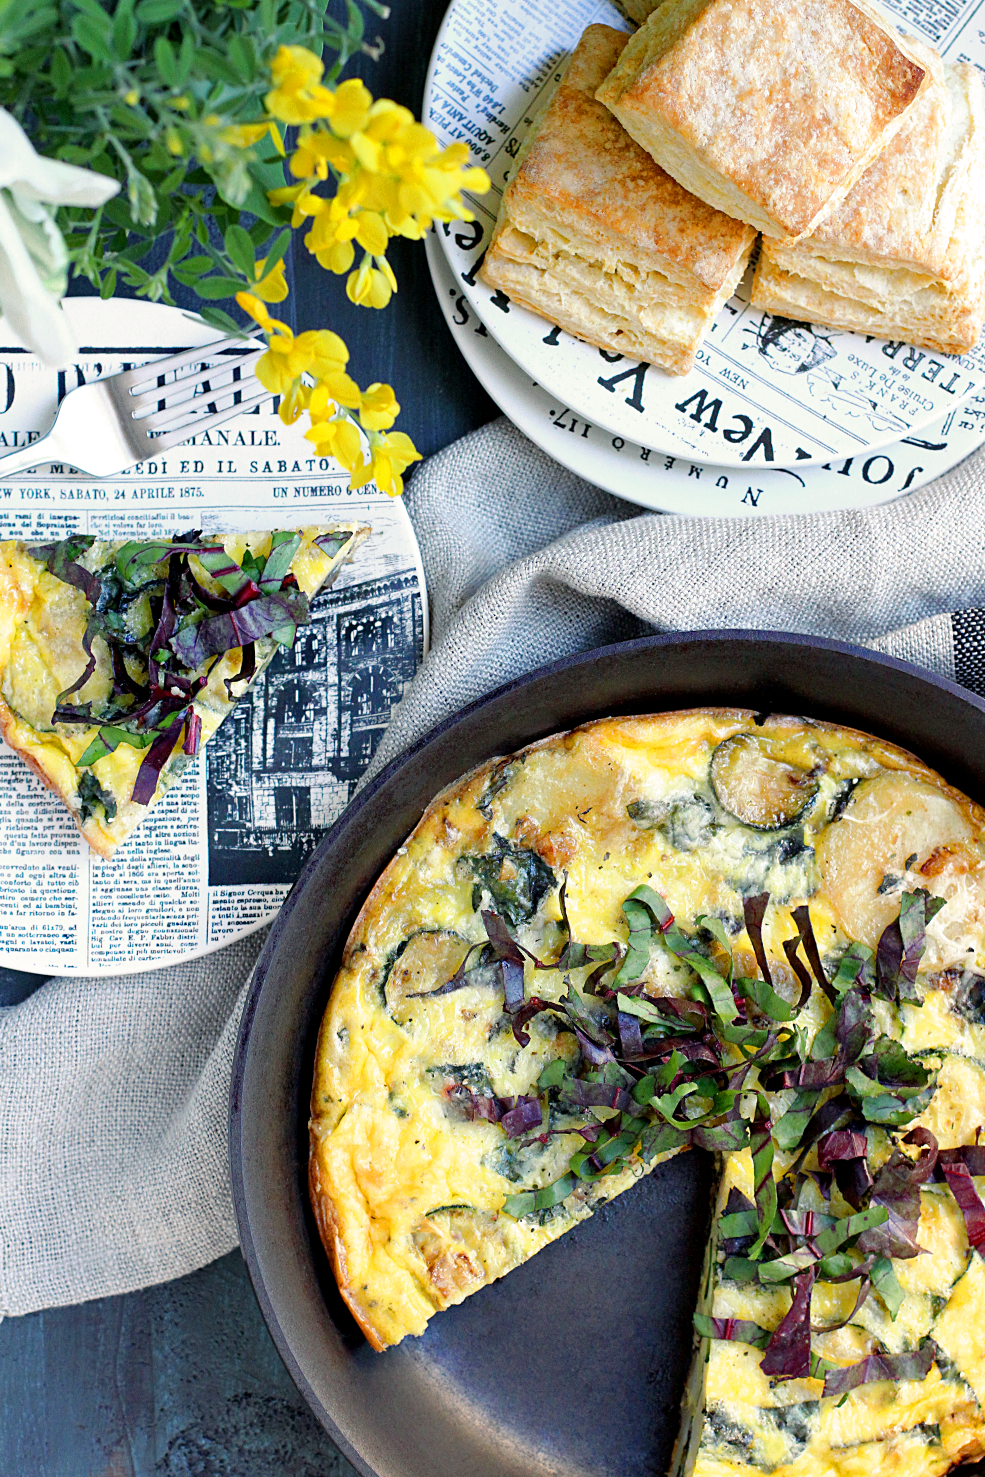 Frittata with Beet Greens, Zucchini and Potatoes